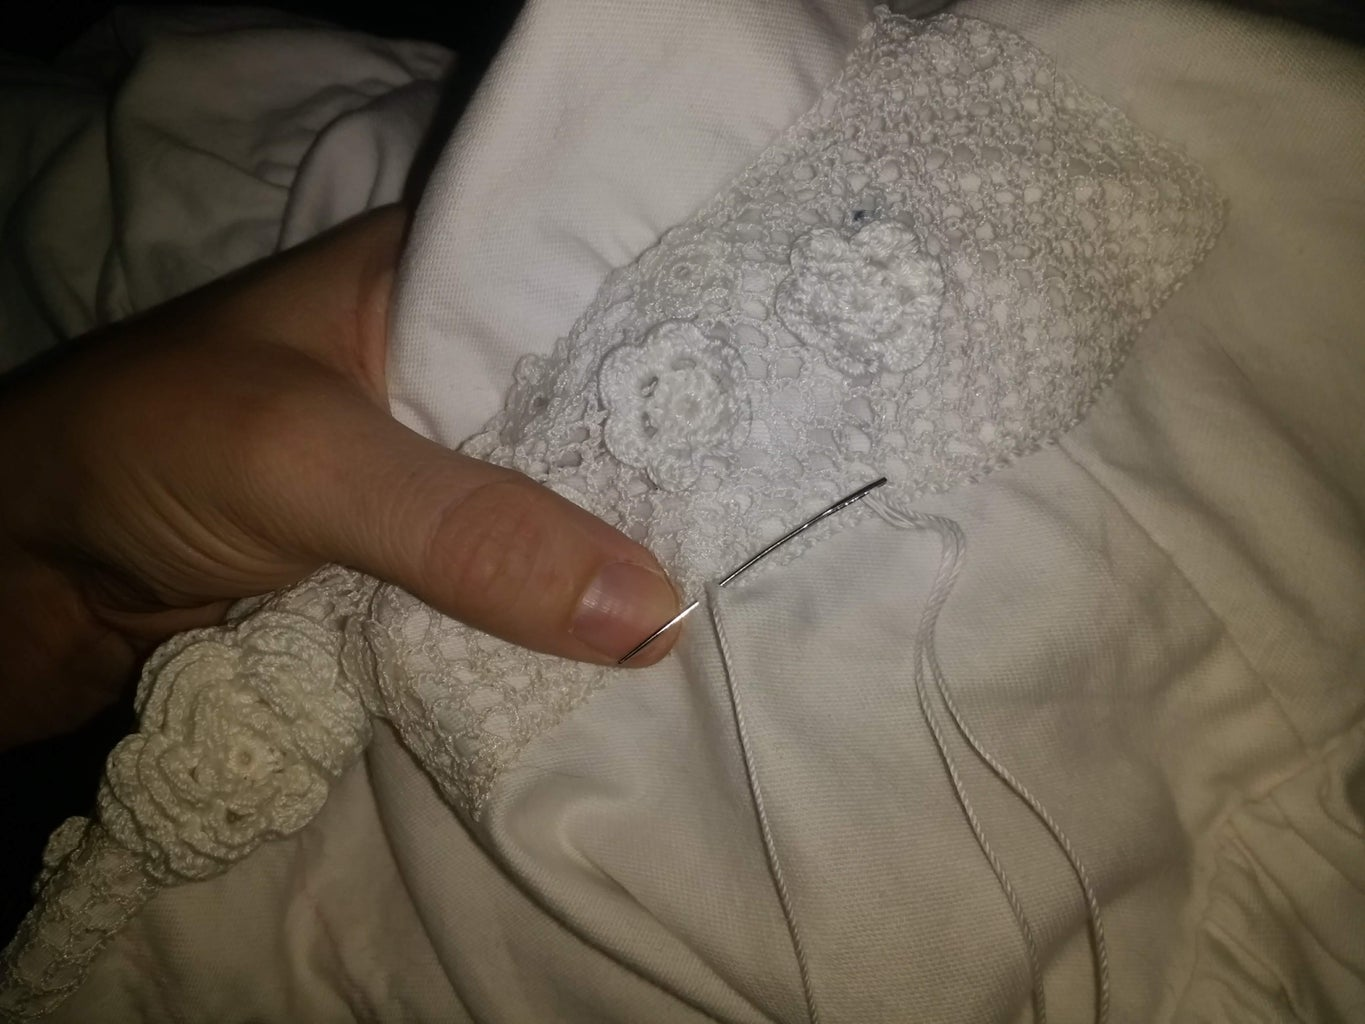 Step 5) Attaching the Net and Motifs (Sewing)